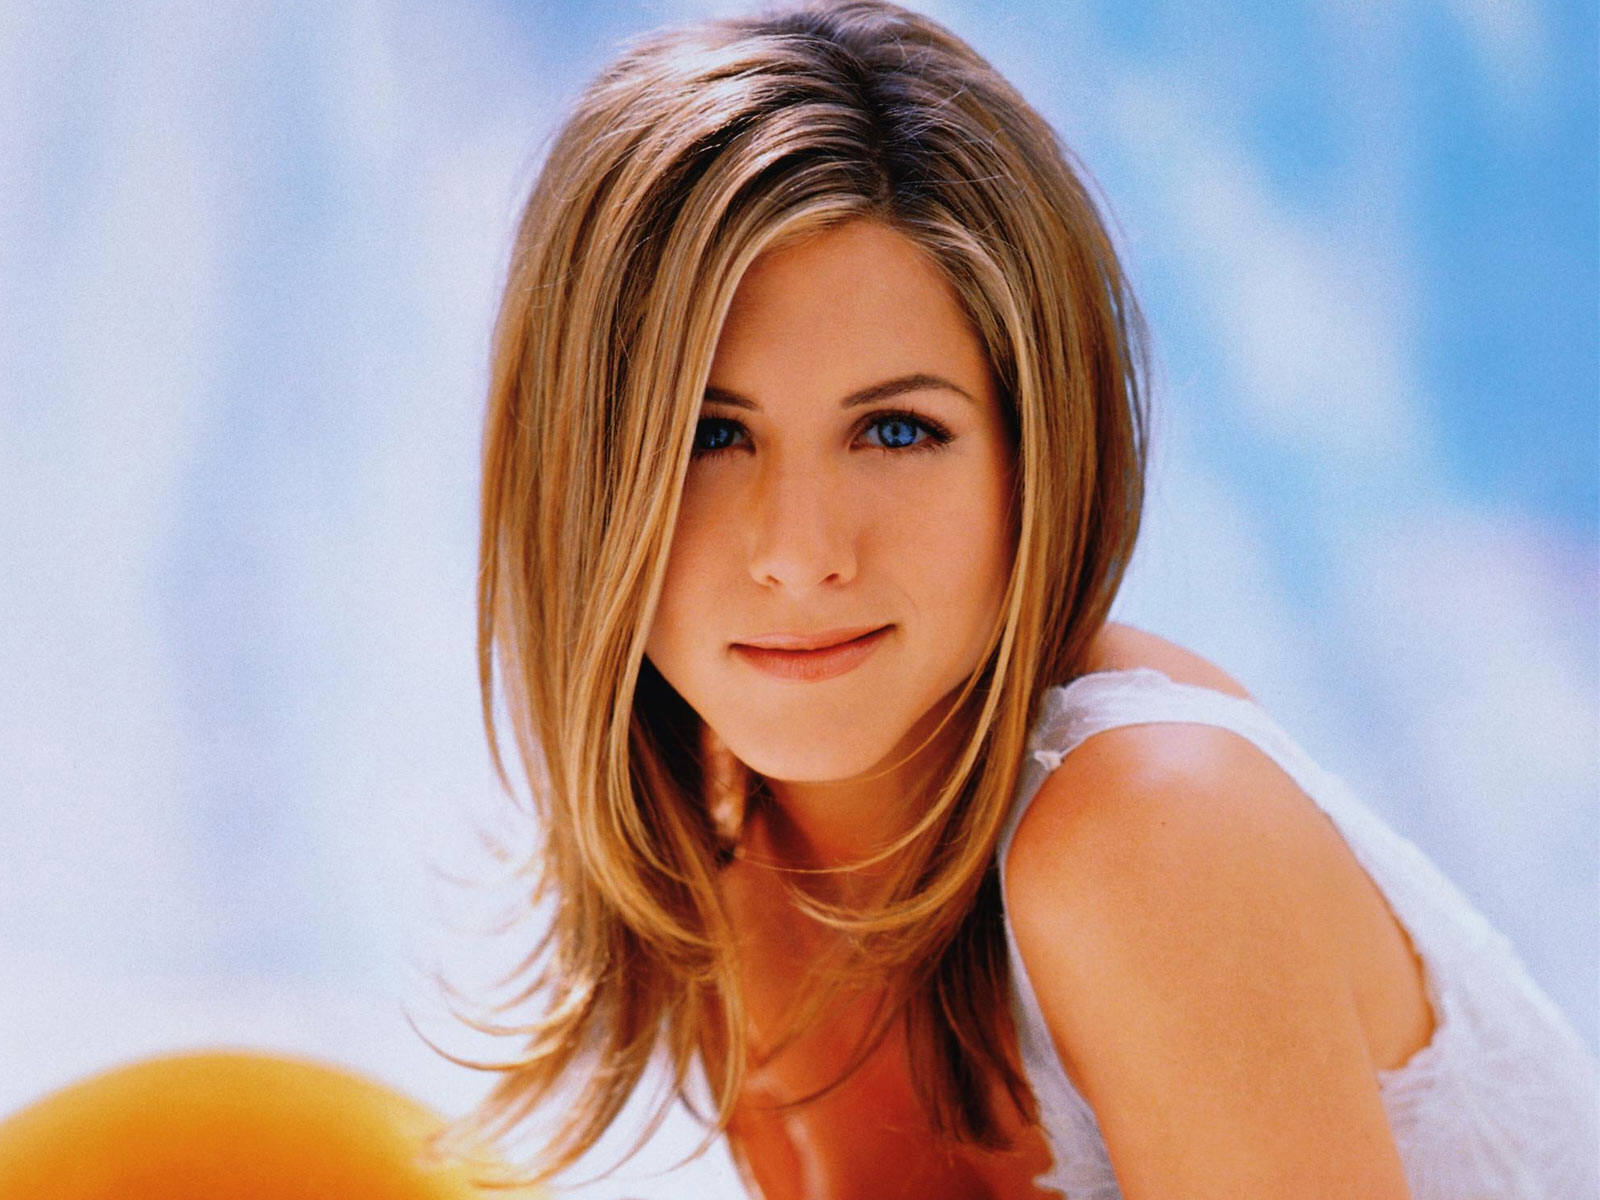 Wallpapers: Jennifer Aniston Wallpaper Hd Jennifer Aniston